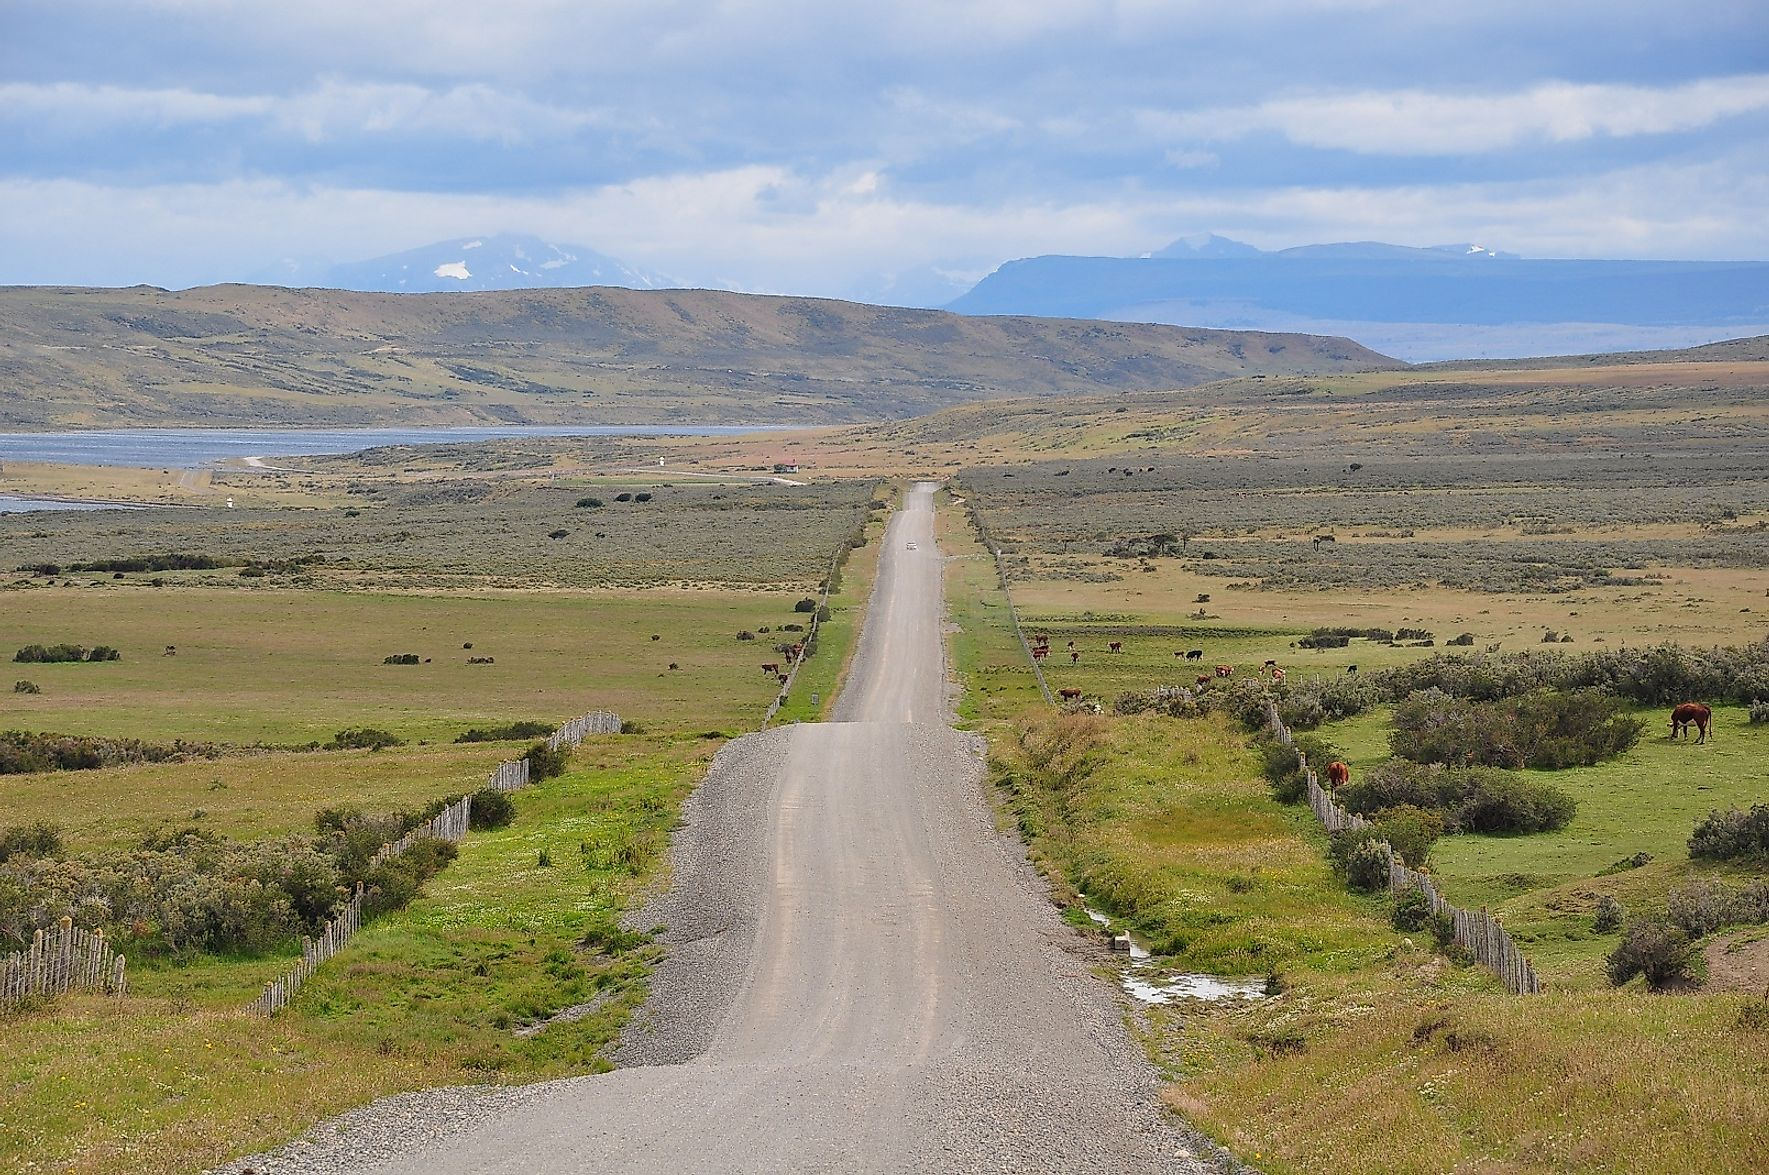 A metalled road running through a grassland in Patagonia, Chile.